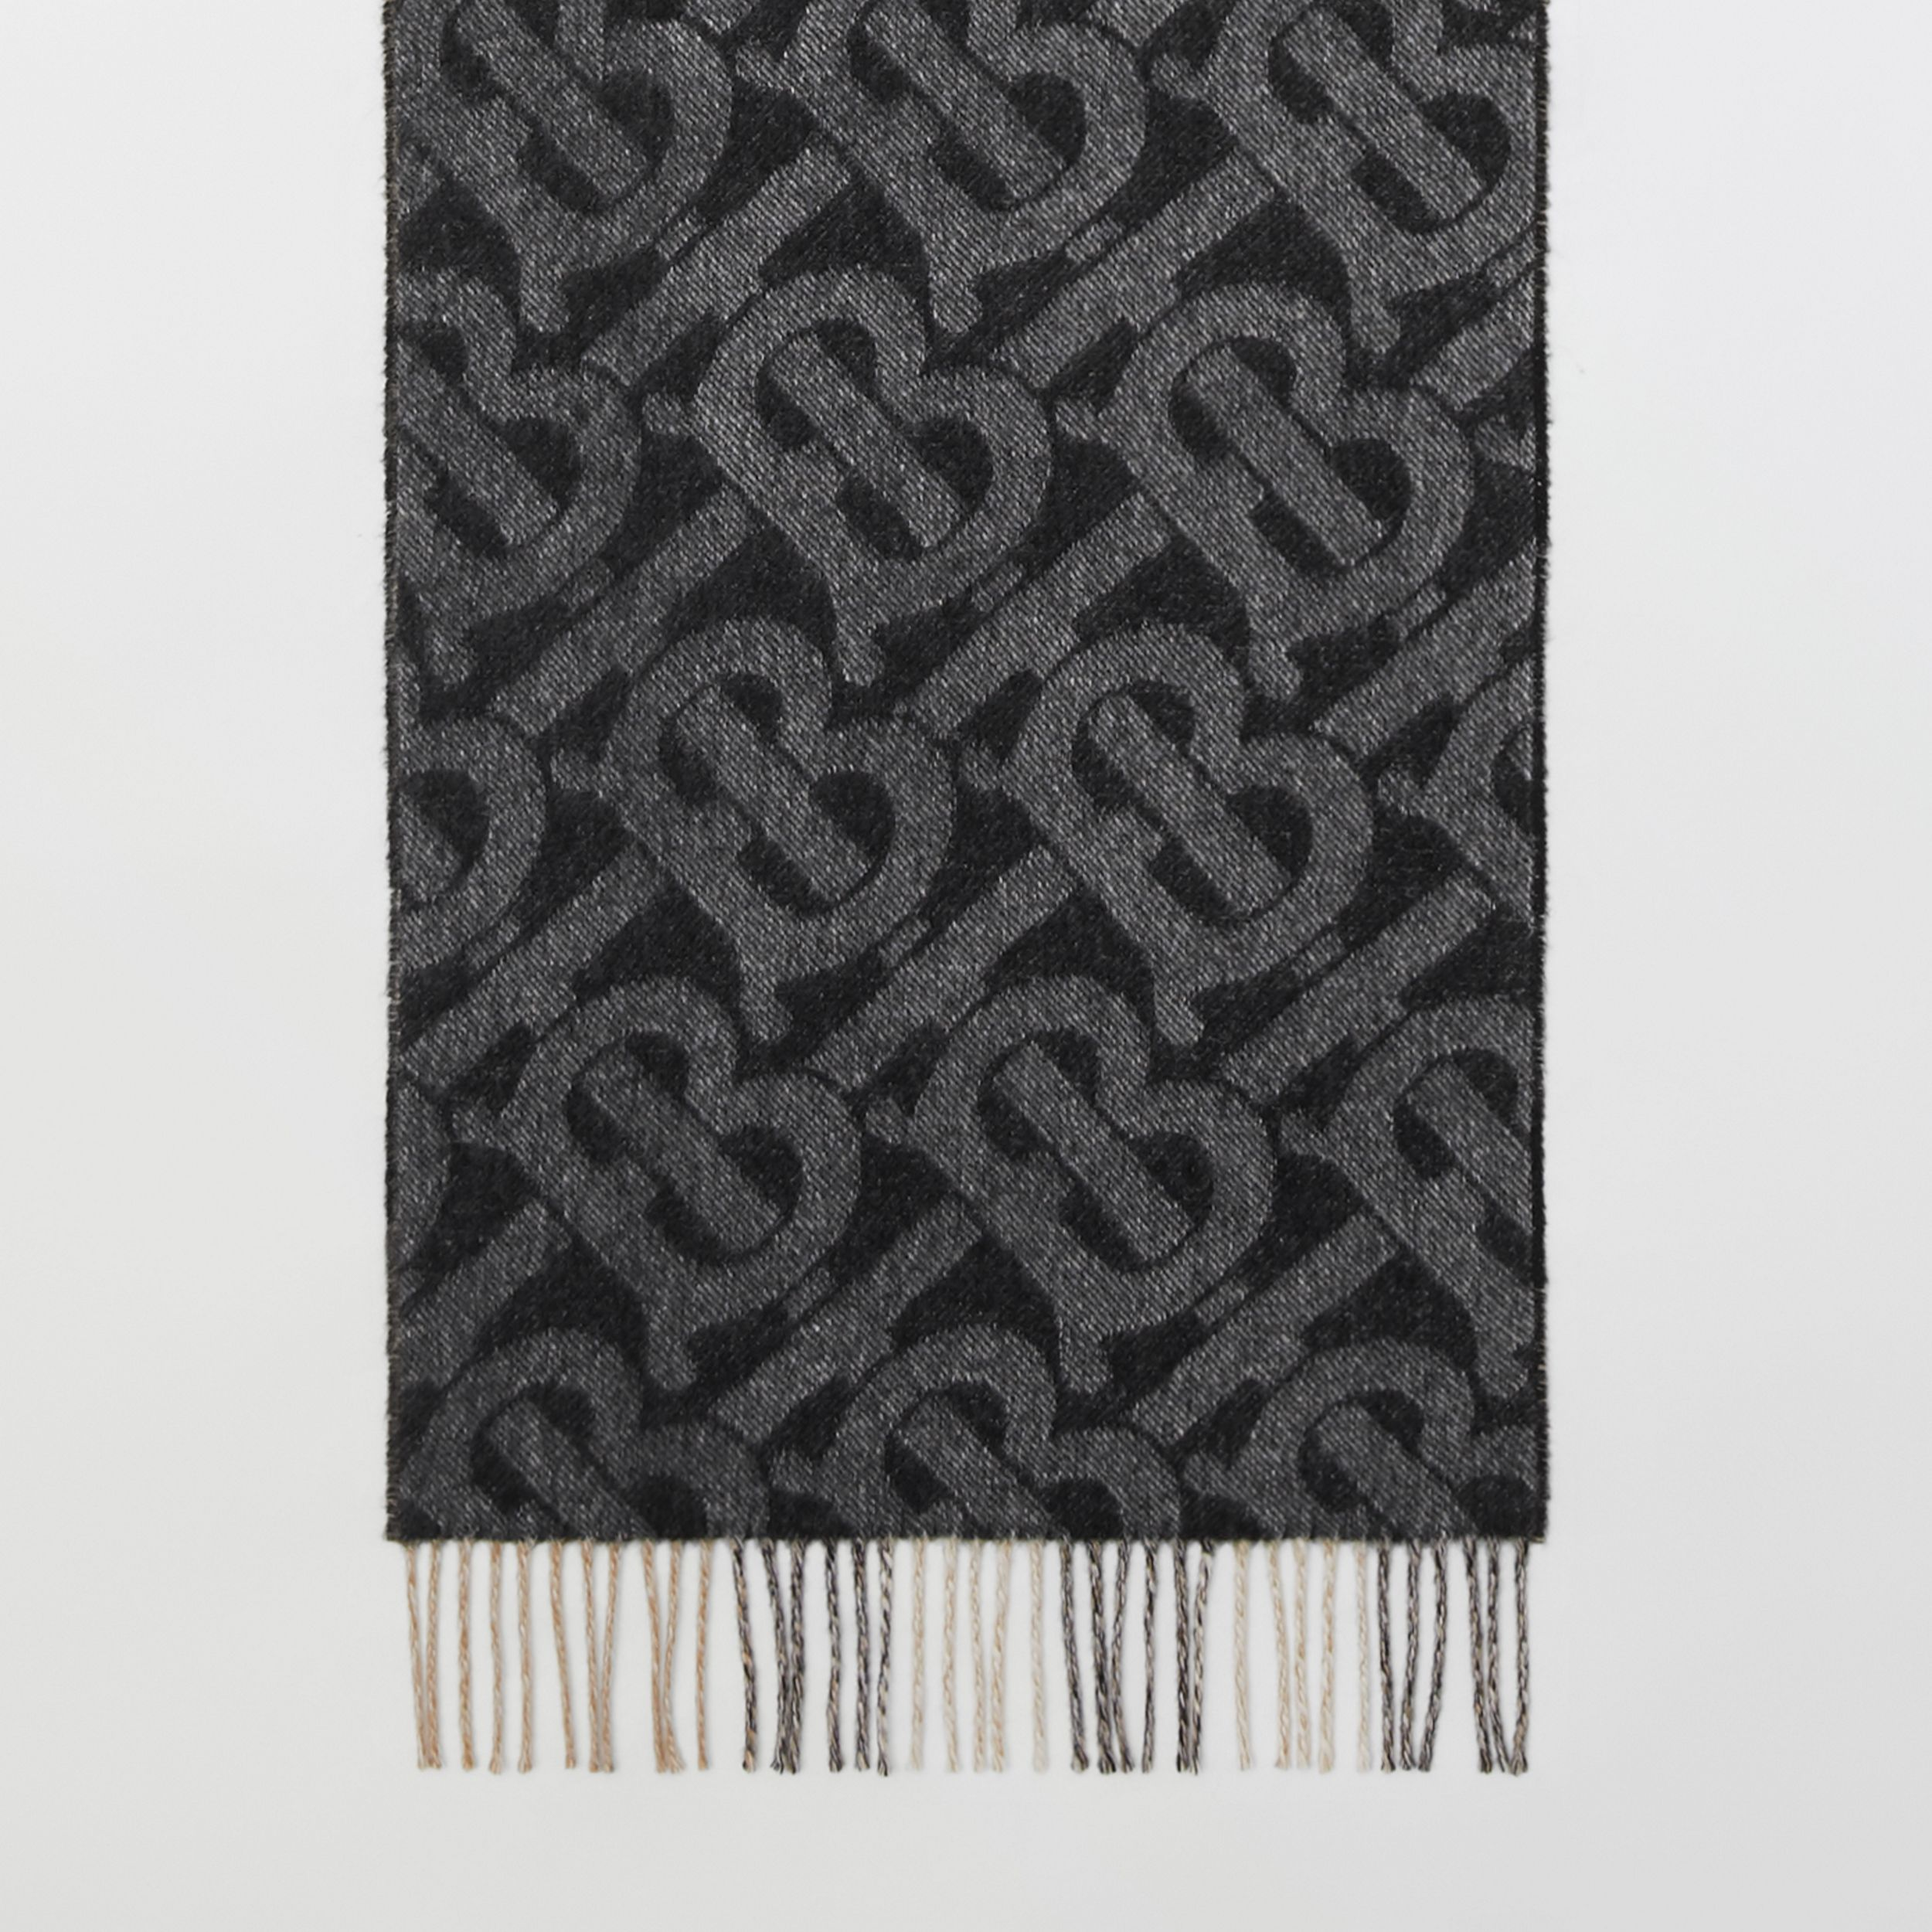 Reversible Check and Monogram Cashmere Scarf in Black / White | Burberry United Kingdom - 3